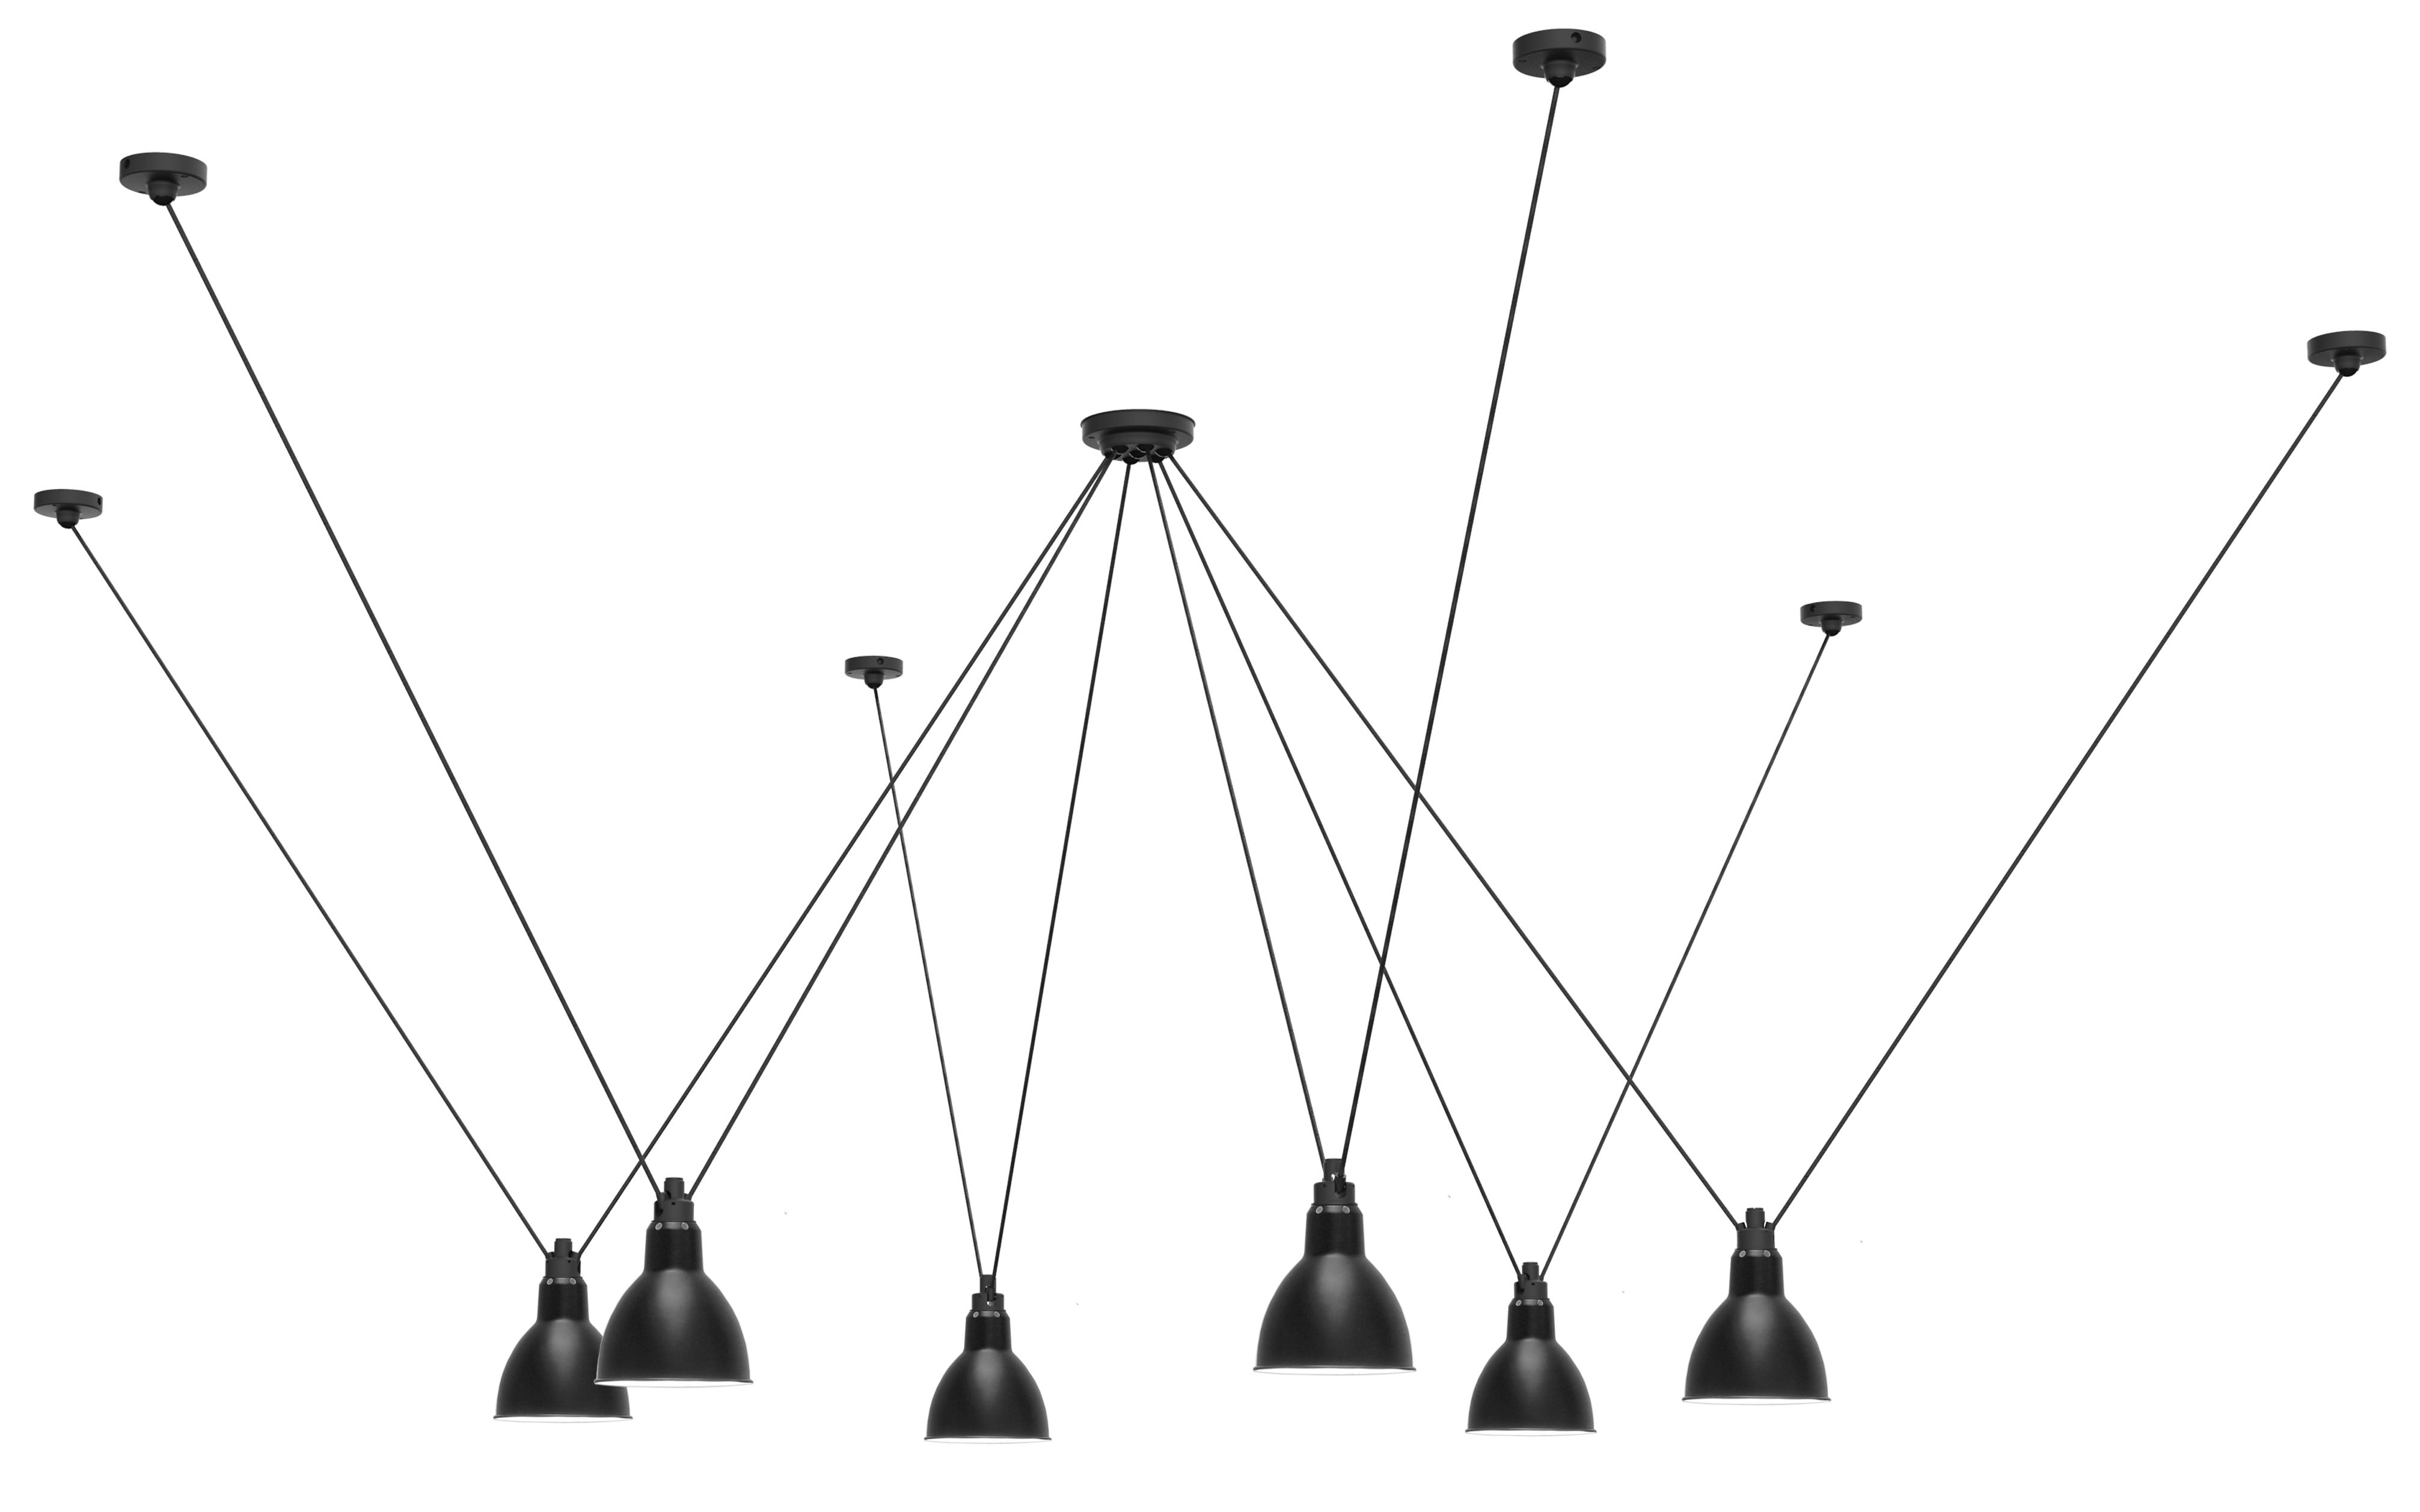 Lighting - Pendant Lighting - Acrobate N°326 Pendant - / Lampes Gras - 6 metal round shades by DCW éditions - Black - Painted steel